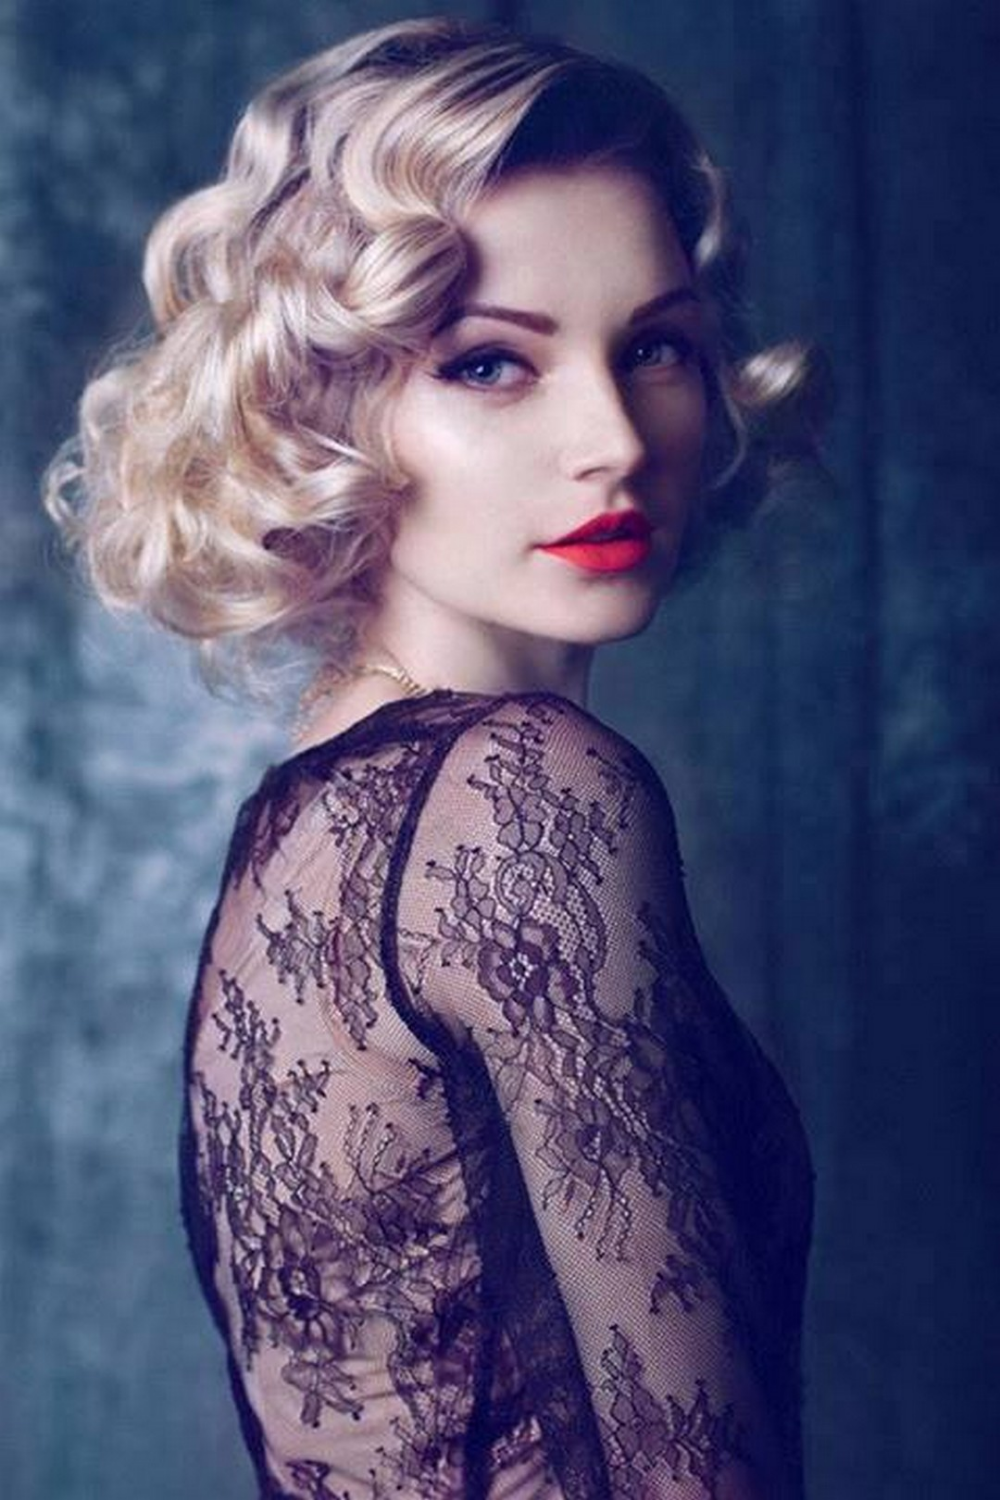 35 Classic And Timeless 1920s Hairstyles For Women Haircuts Hairstyles 2020 Elegant Wedding Hair Short Wedding Hair Vintage Hairstyles